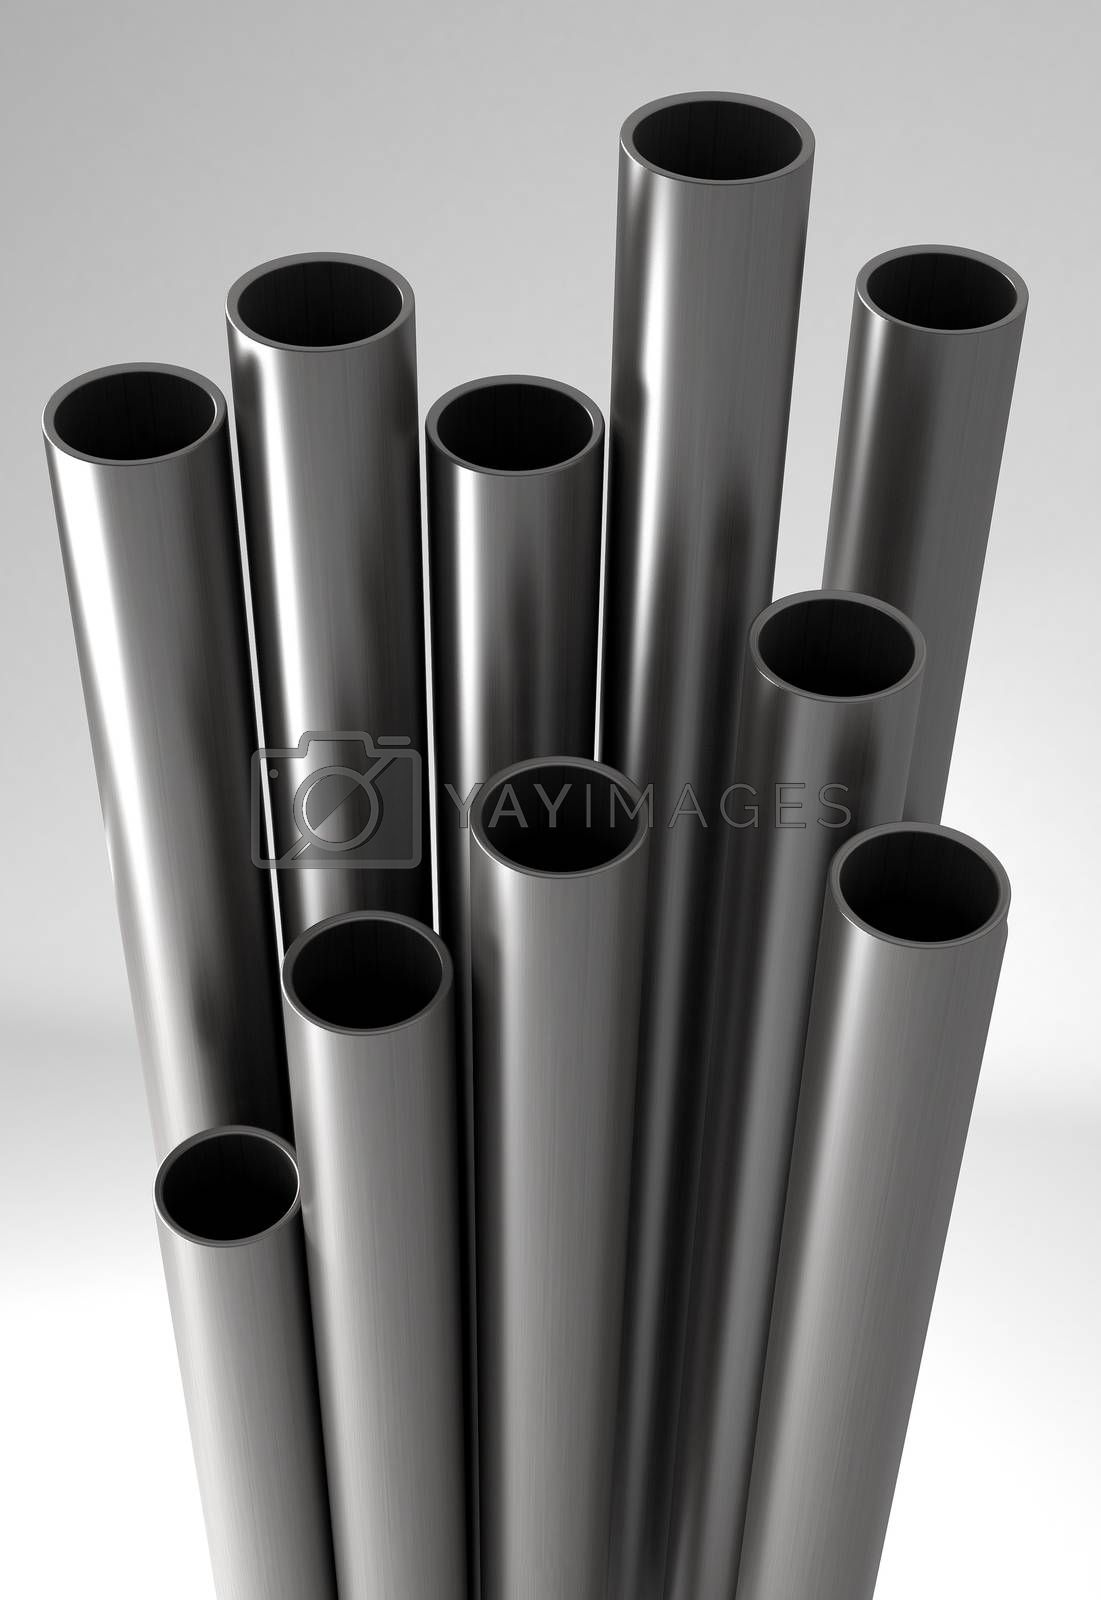 Royalty free image of Metal tubes. by klss